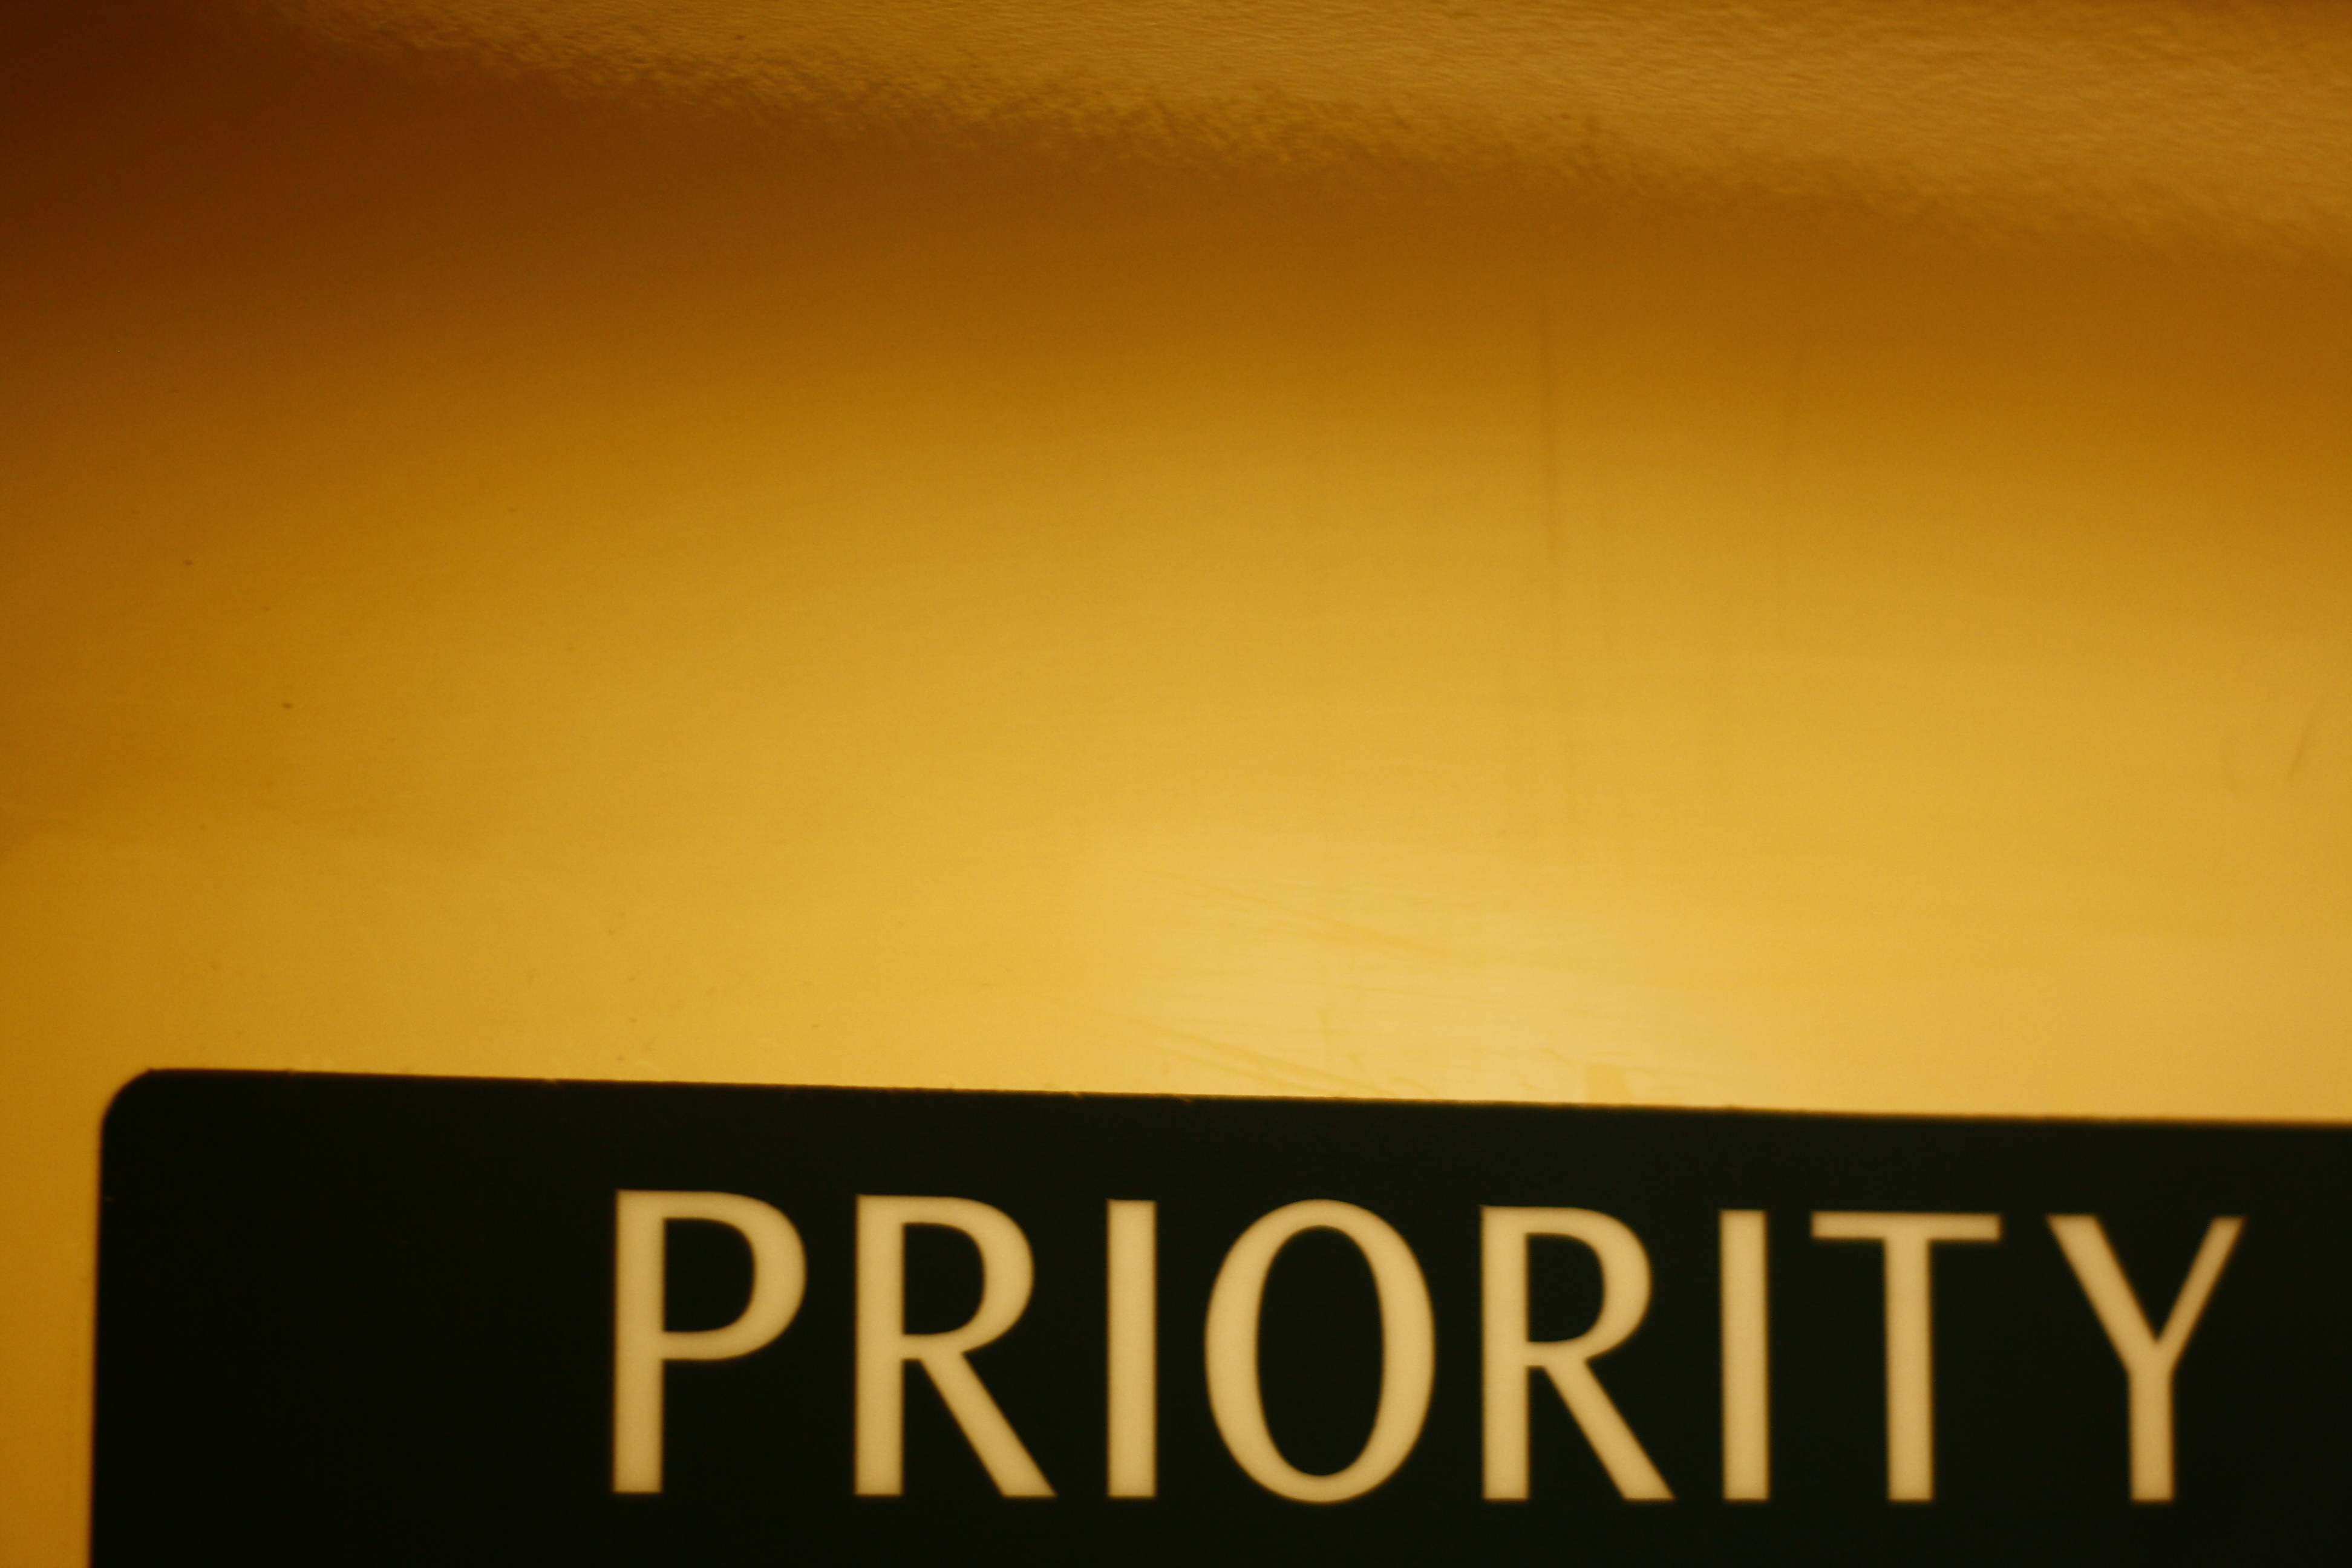 Decide on Priority